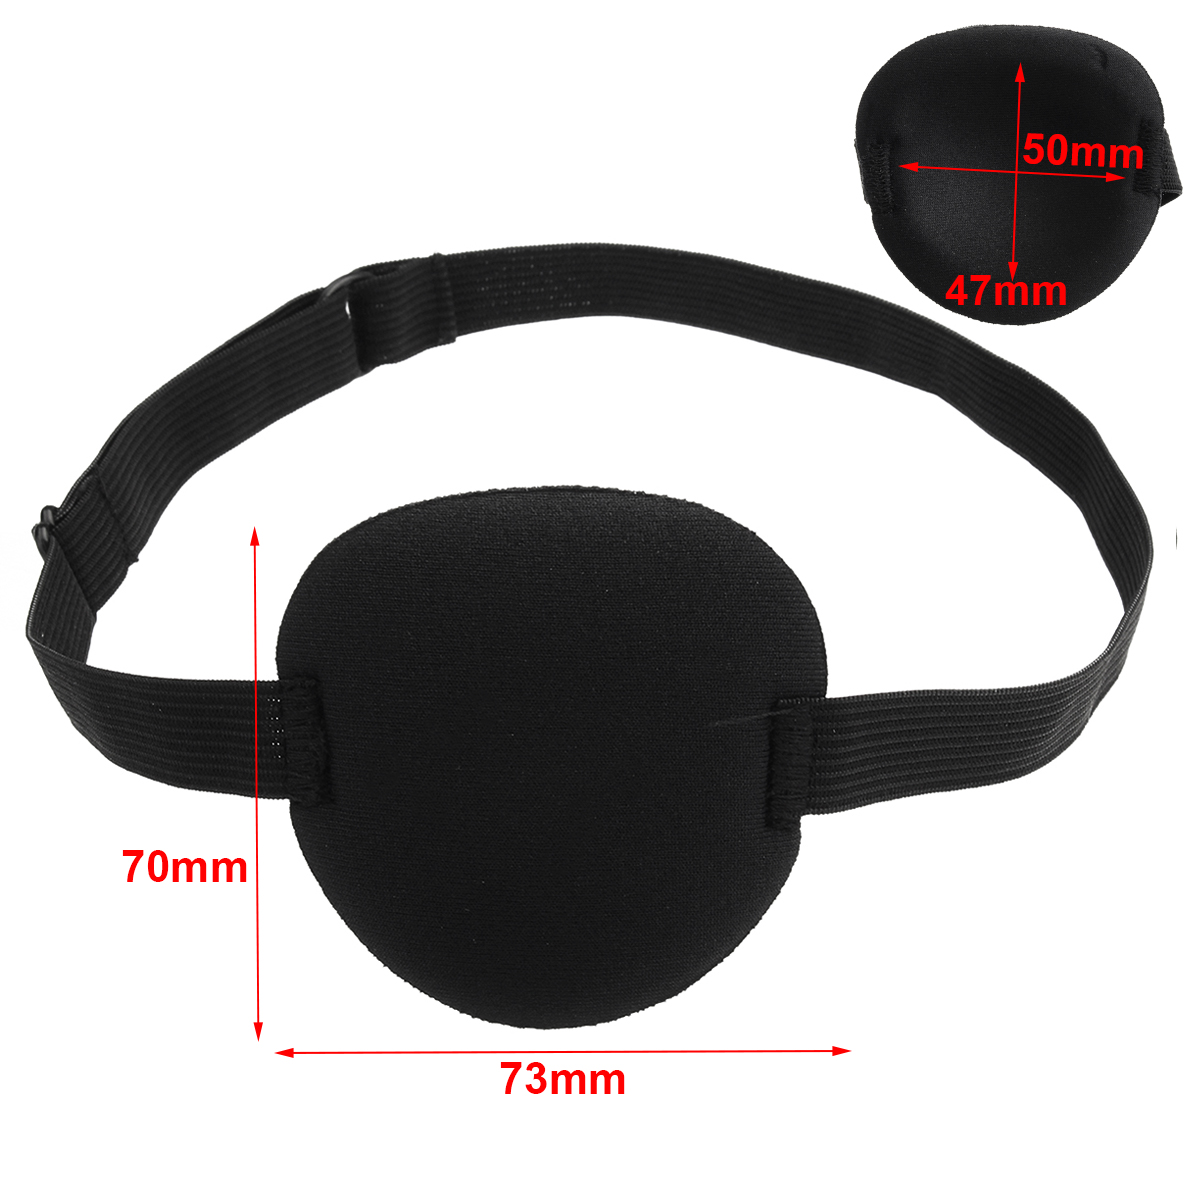 Concave Eye Patch Groove Washable Eyeshades With Adjustable Strap For Kids/Adult